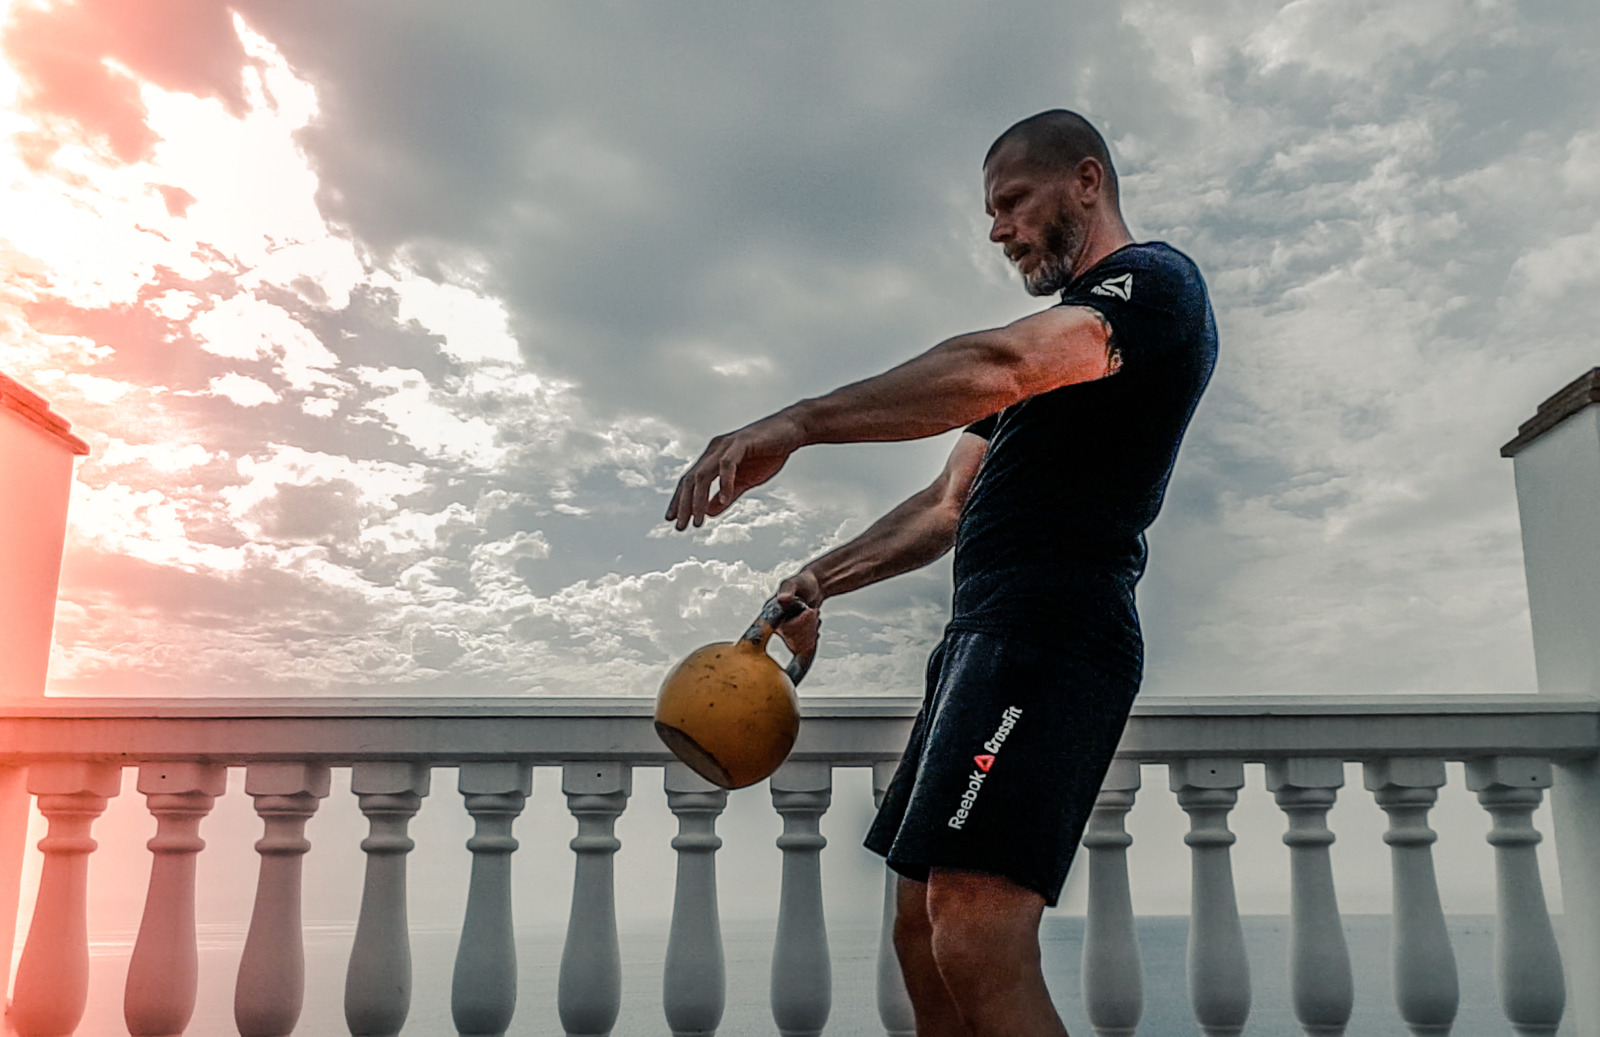 Man with Kettle bell